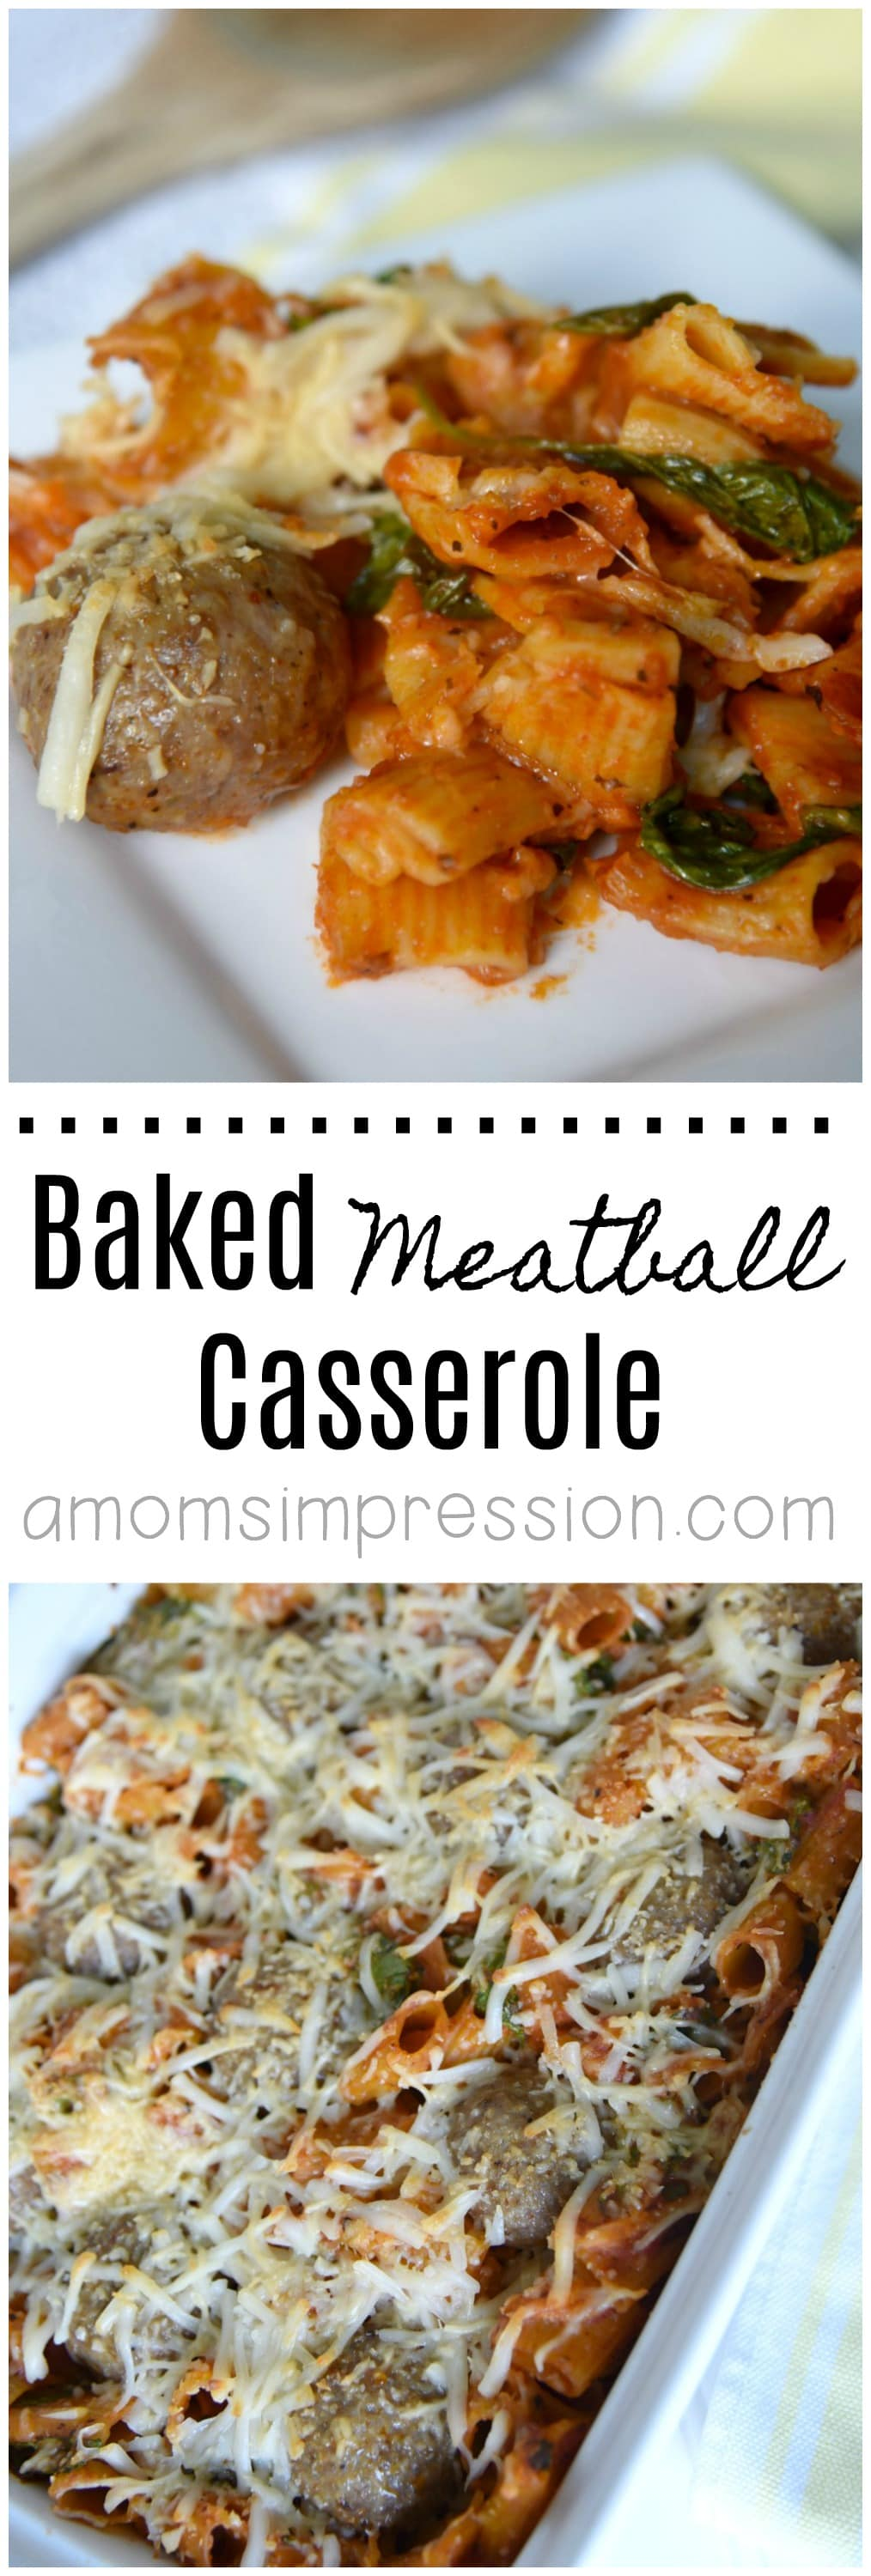 I'm always looking for an alternative to the classic spaghetti and meatballs, this easy baked meatball casserole is perfect! This is a recipe you will be making over and over again.